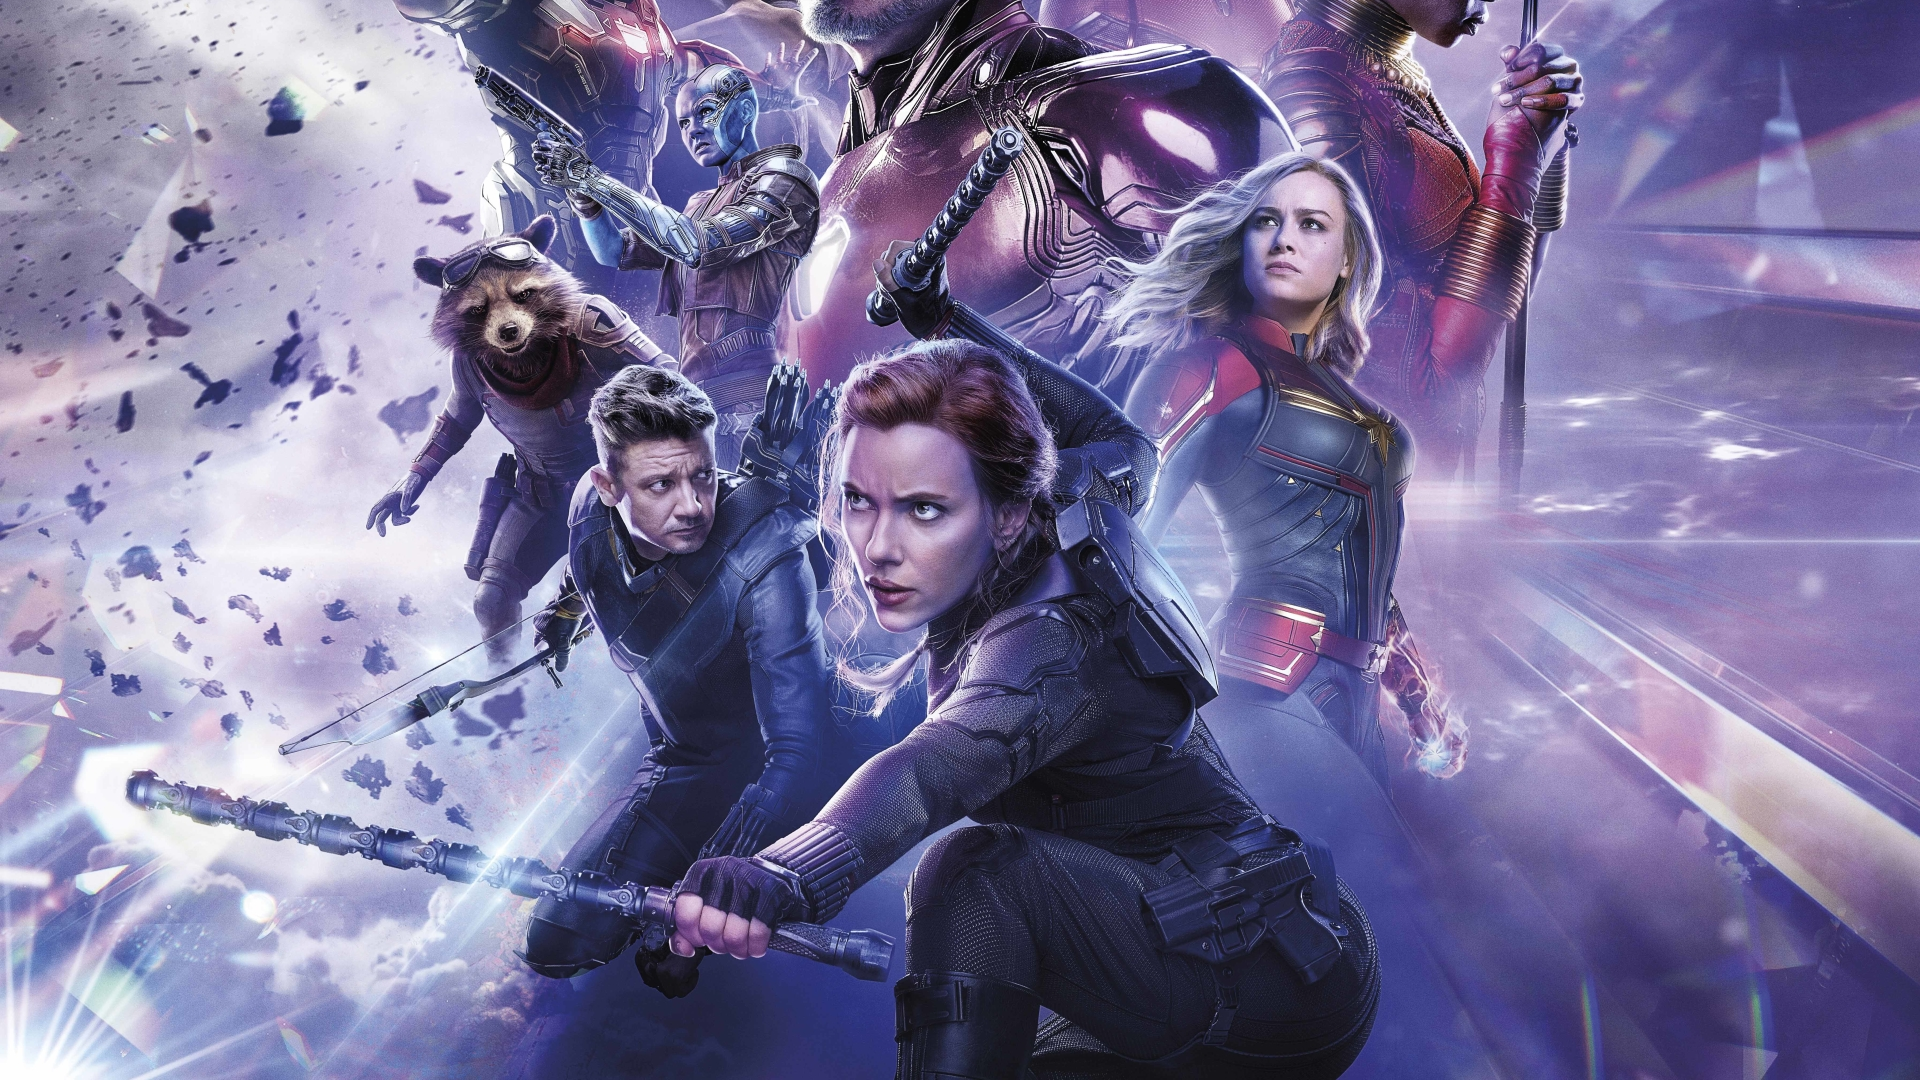 1920x1080 Black Widow Avengers Endgame Official Poster ...